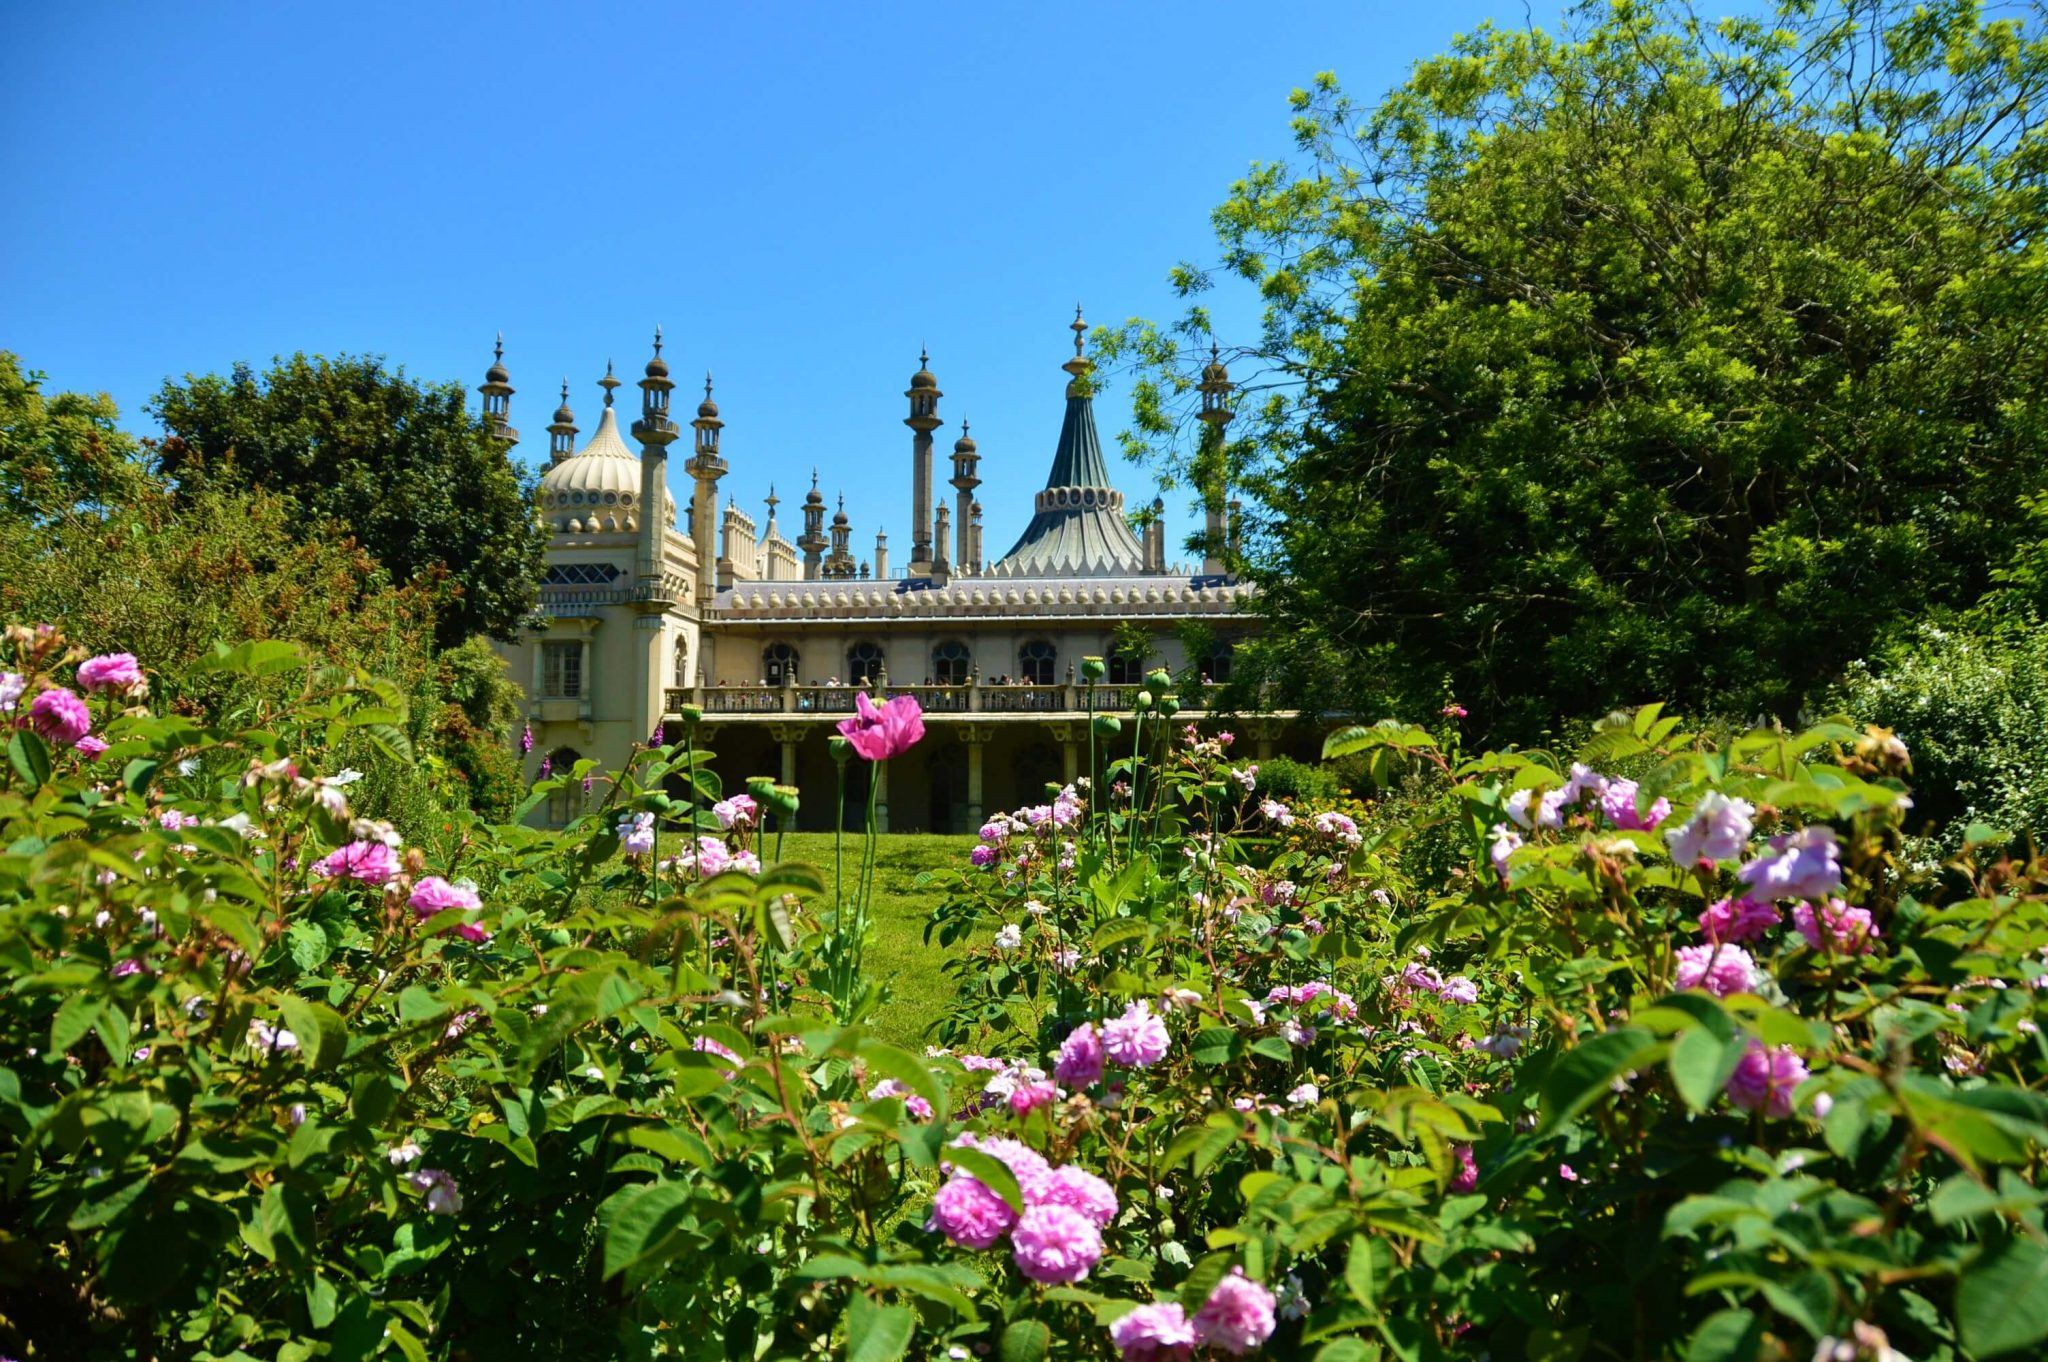 Brighton Pavillion with pink roses in the foreground